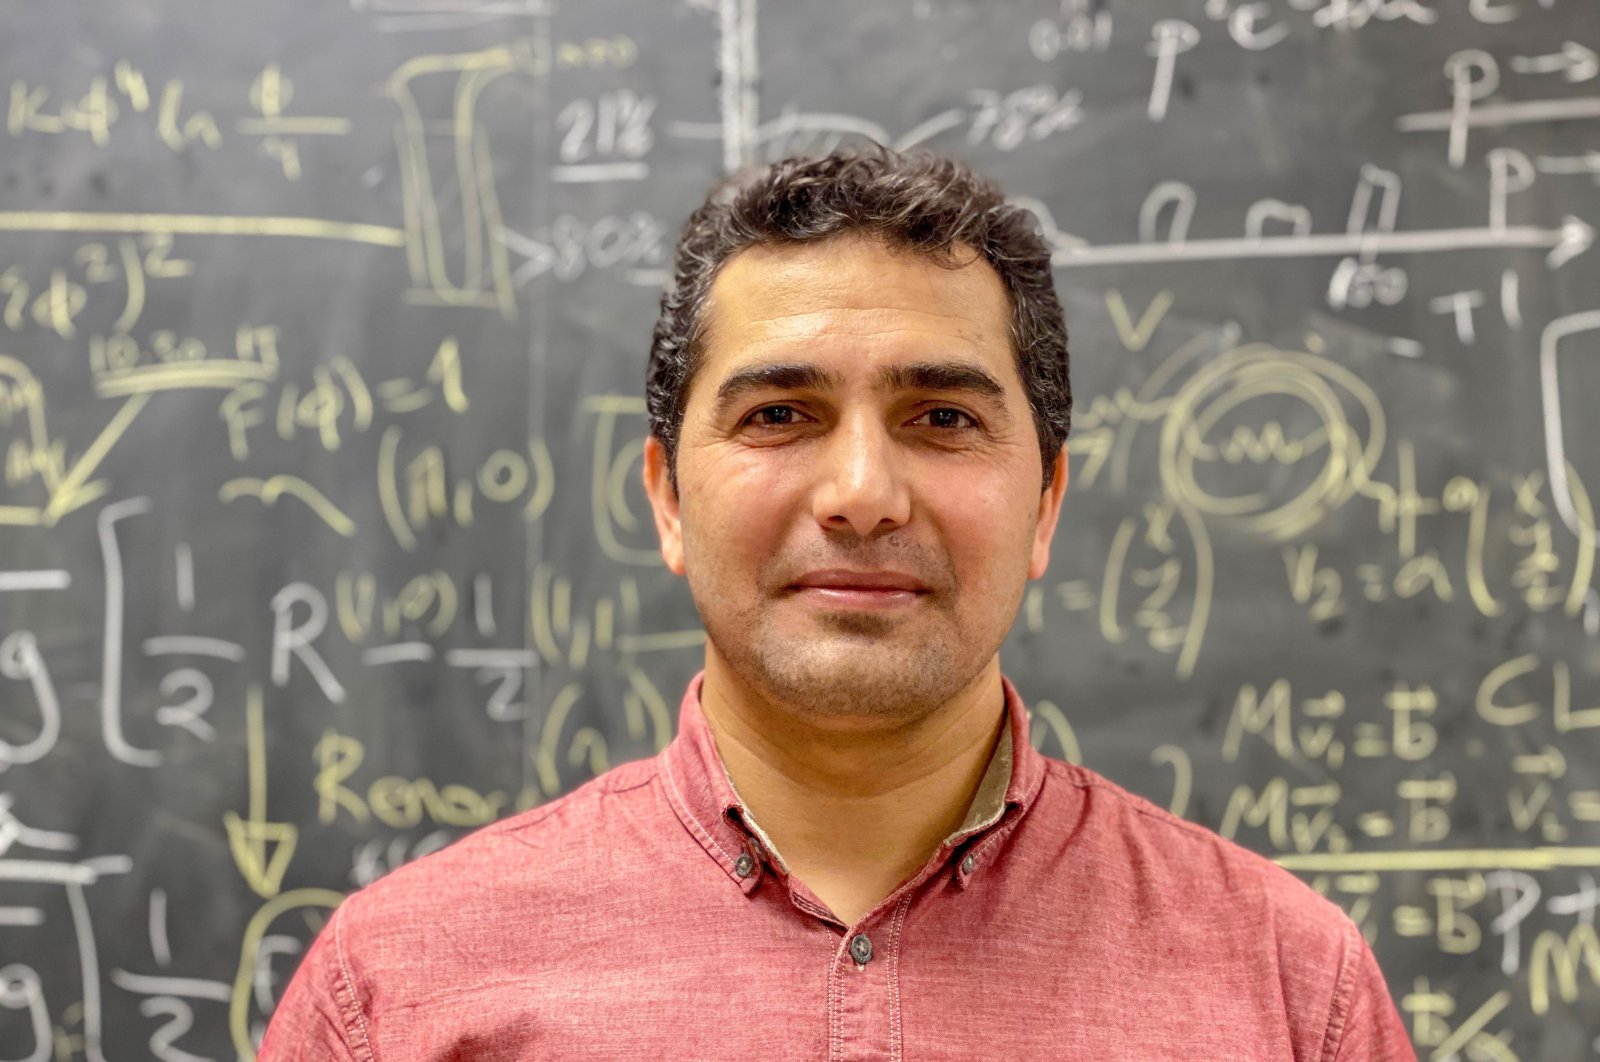 33-year-old Emrah Tıraş wants to establish in Turkey an international neutrino research center and R&D detector project in the coming years. (DHA Photo)